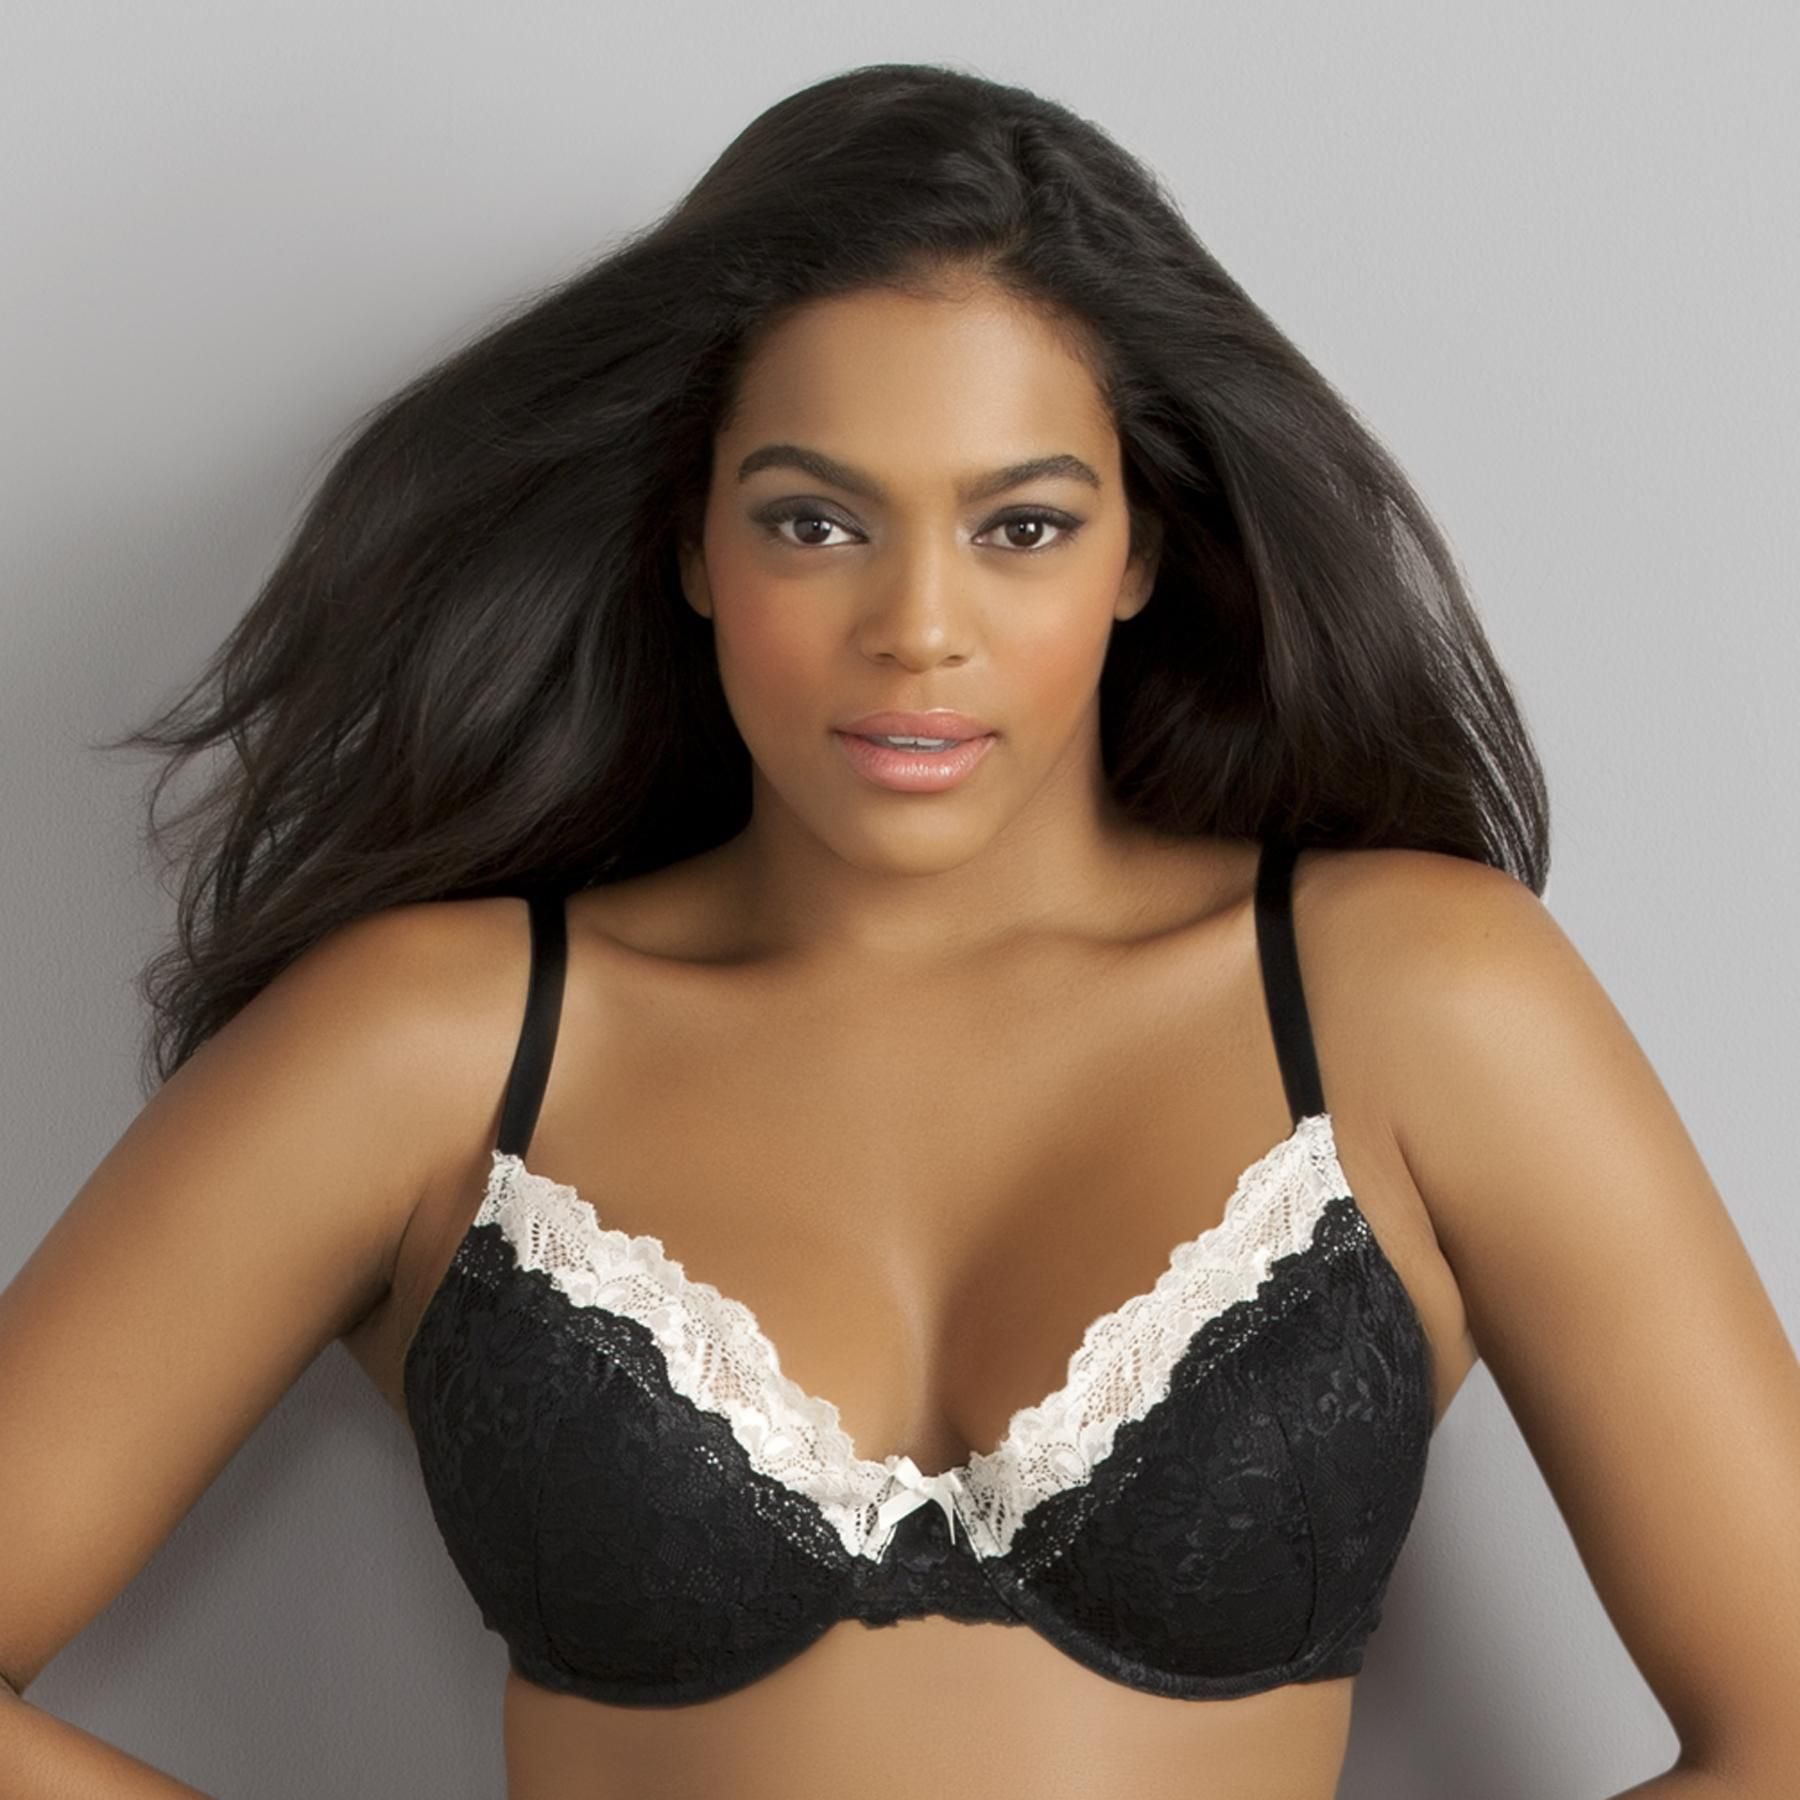 Sofia by Sofia Vergara Women's Flirty Bombshell Bra